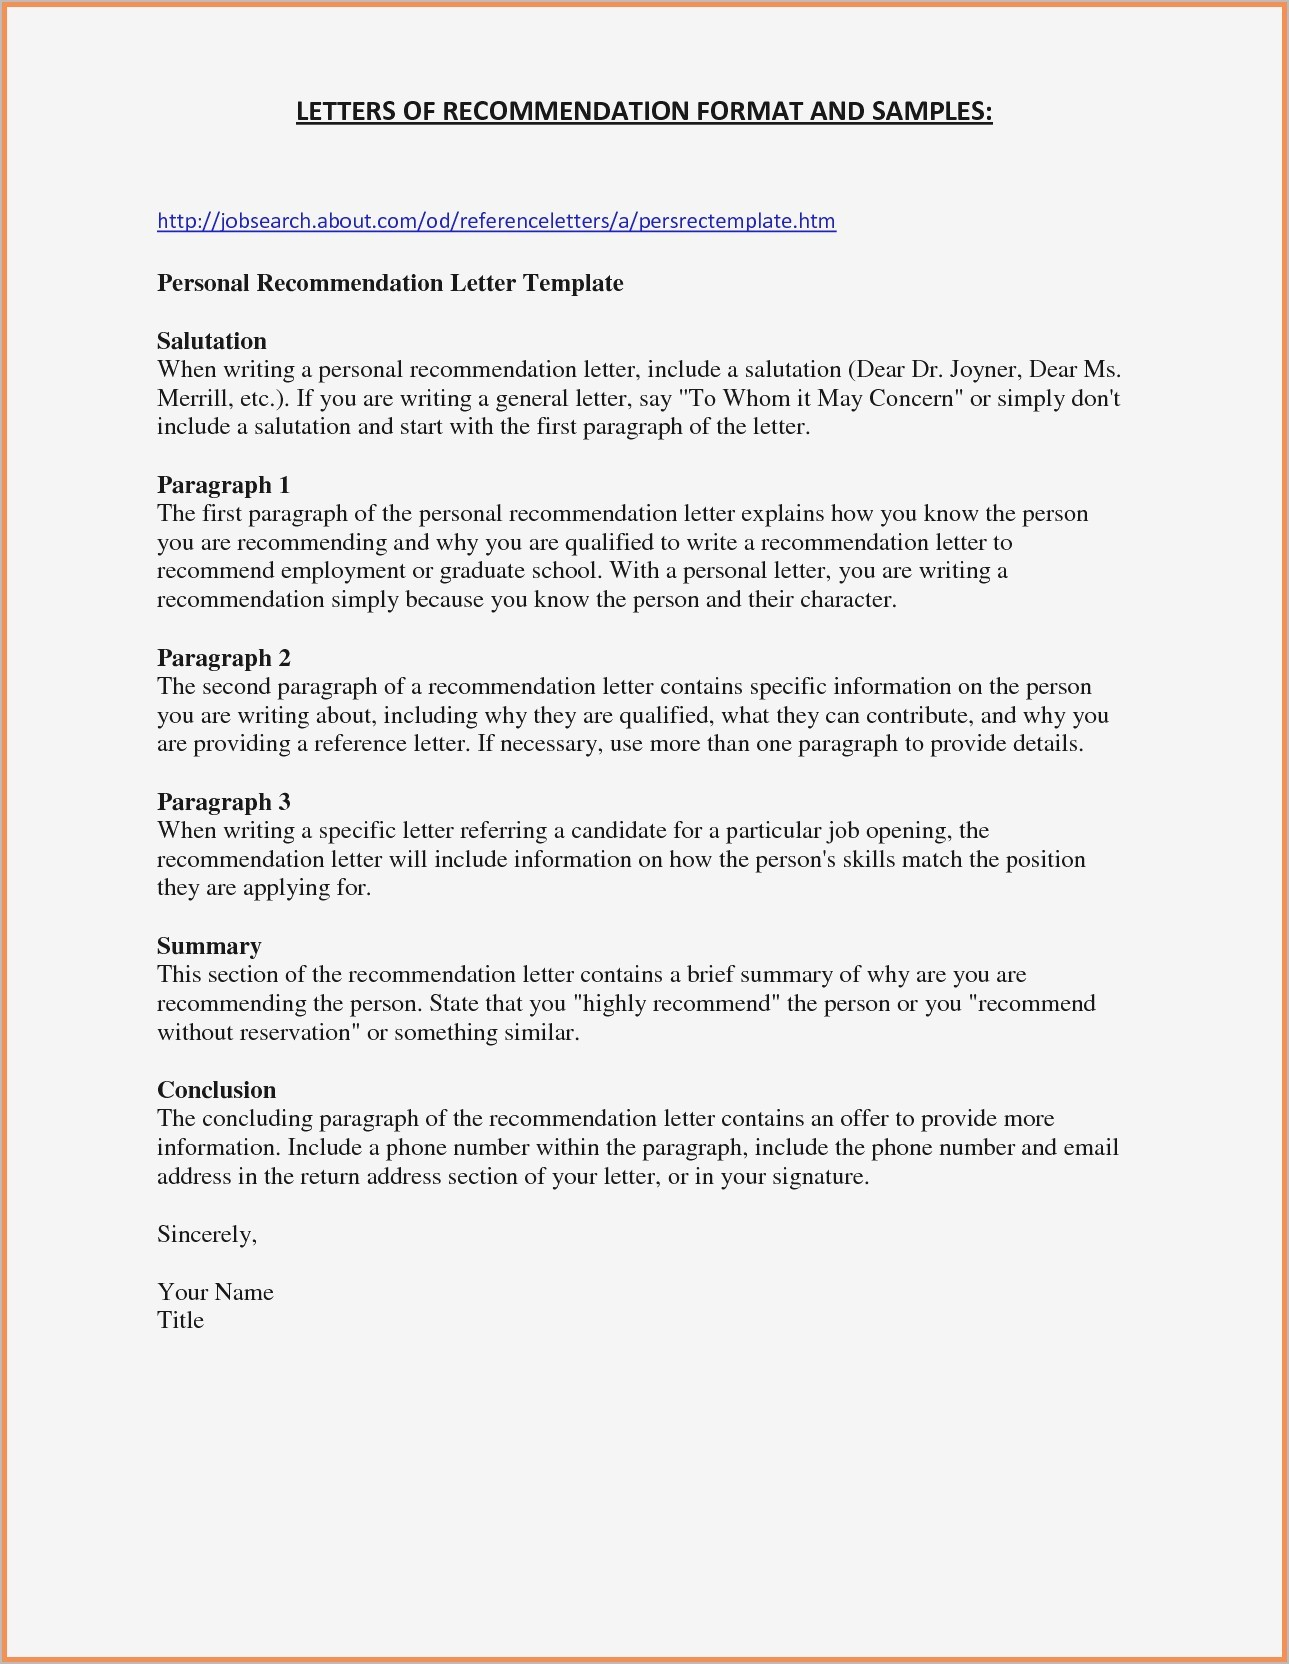 Letter Of Recommendation for A Friend Template - Letters Re Mendation for A Job Refrence Writing A Letter Re